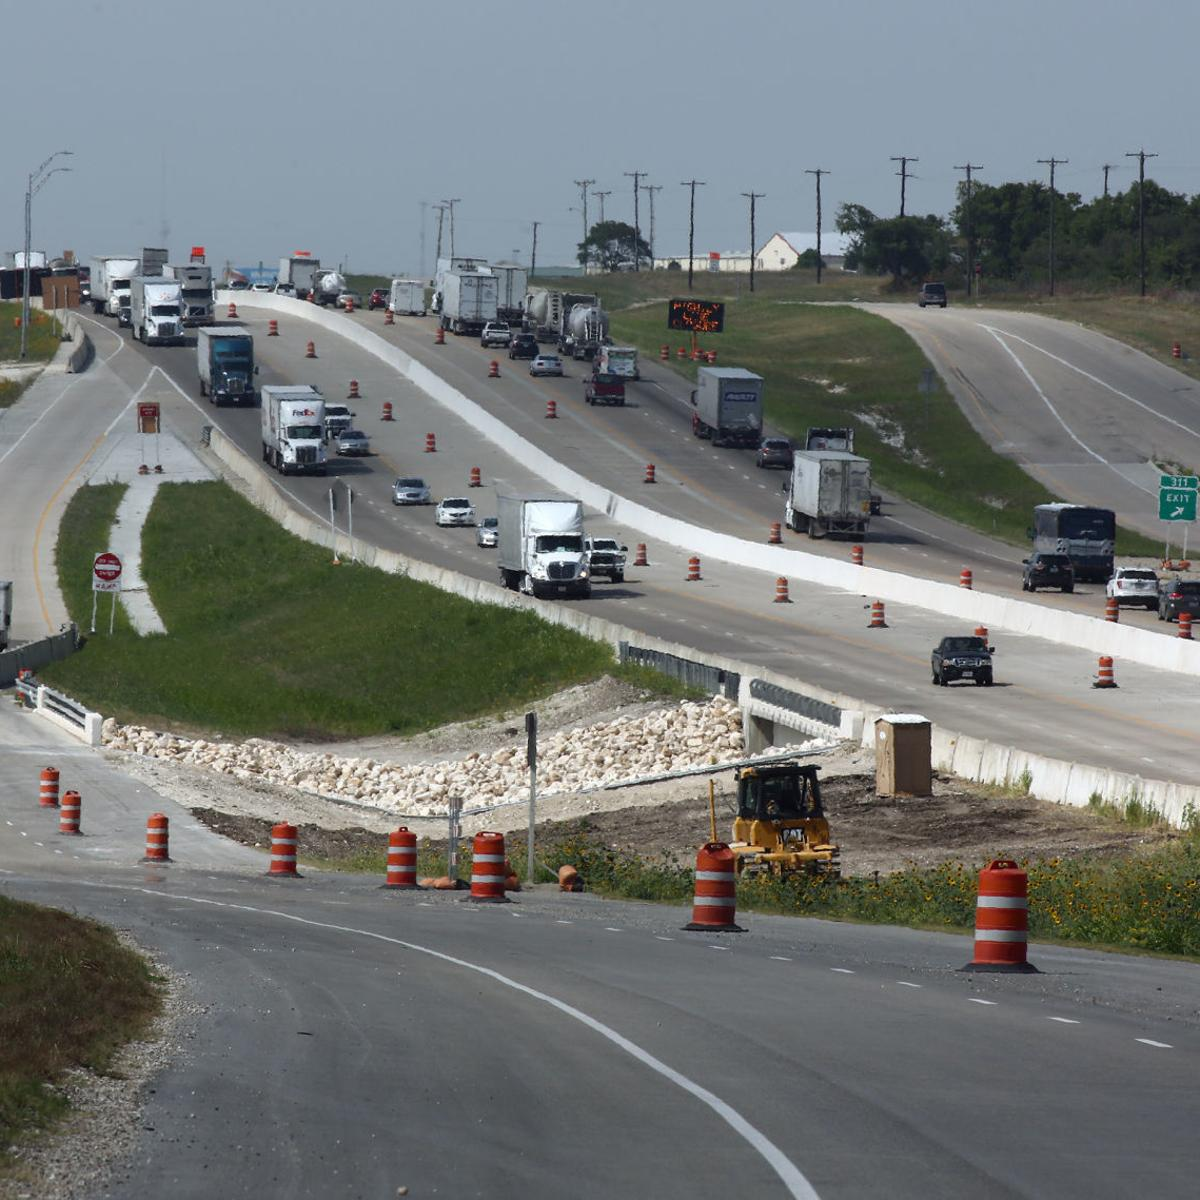 Steve Boggs: I'm dreaming of new and improved frontage roads along